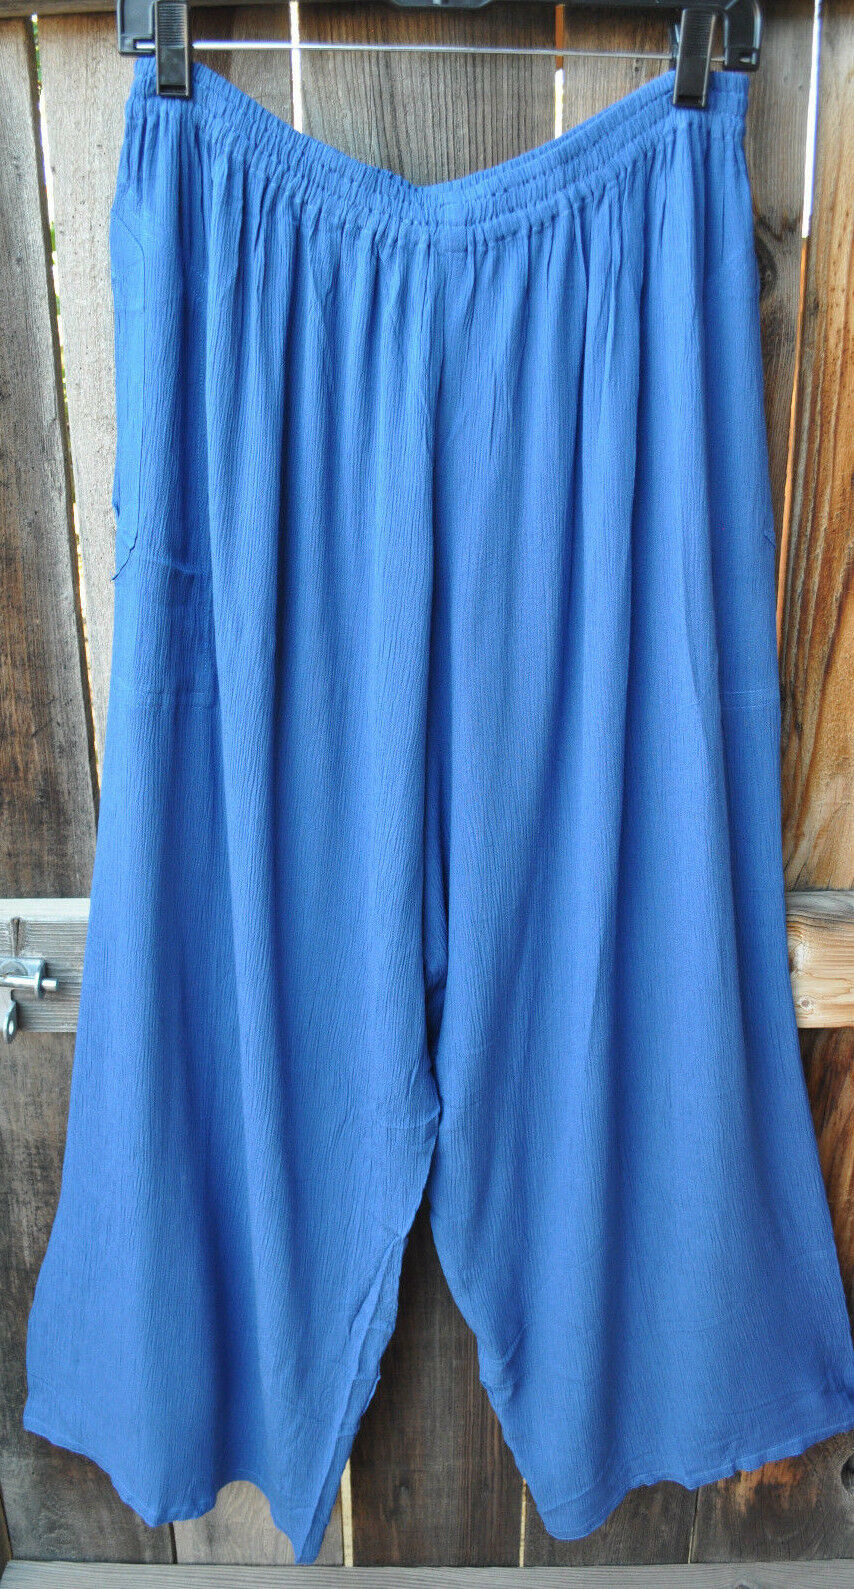 ART TO WEAR ANACAPA PANTS IN NEW SOLID AZTEC blueE BY MISSION CANYON, OS+, NWT ,